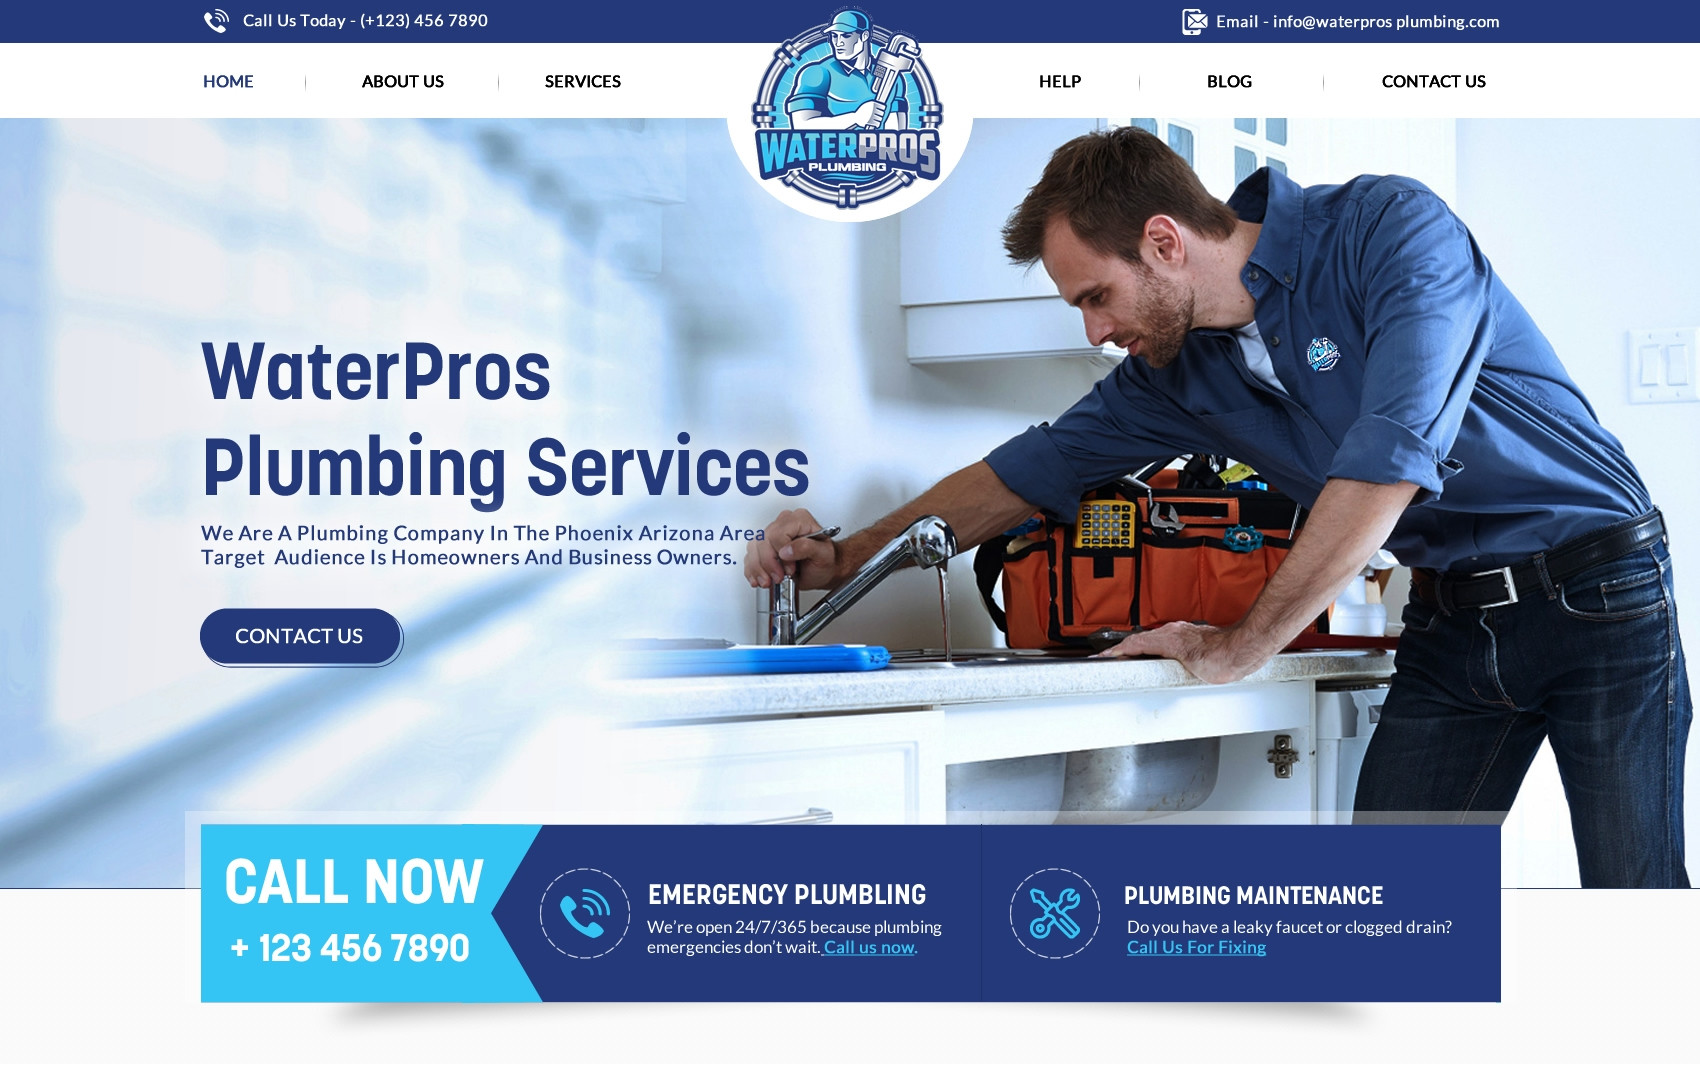 Water Pros Plumbing Services